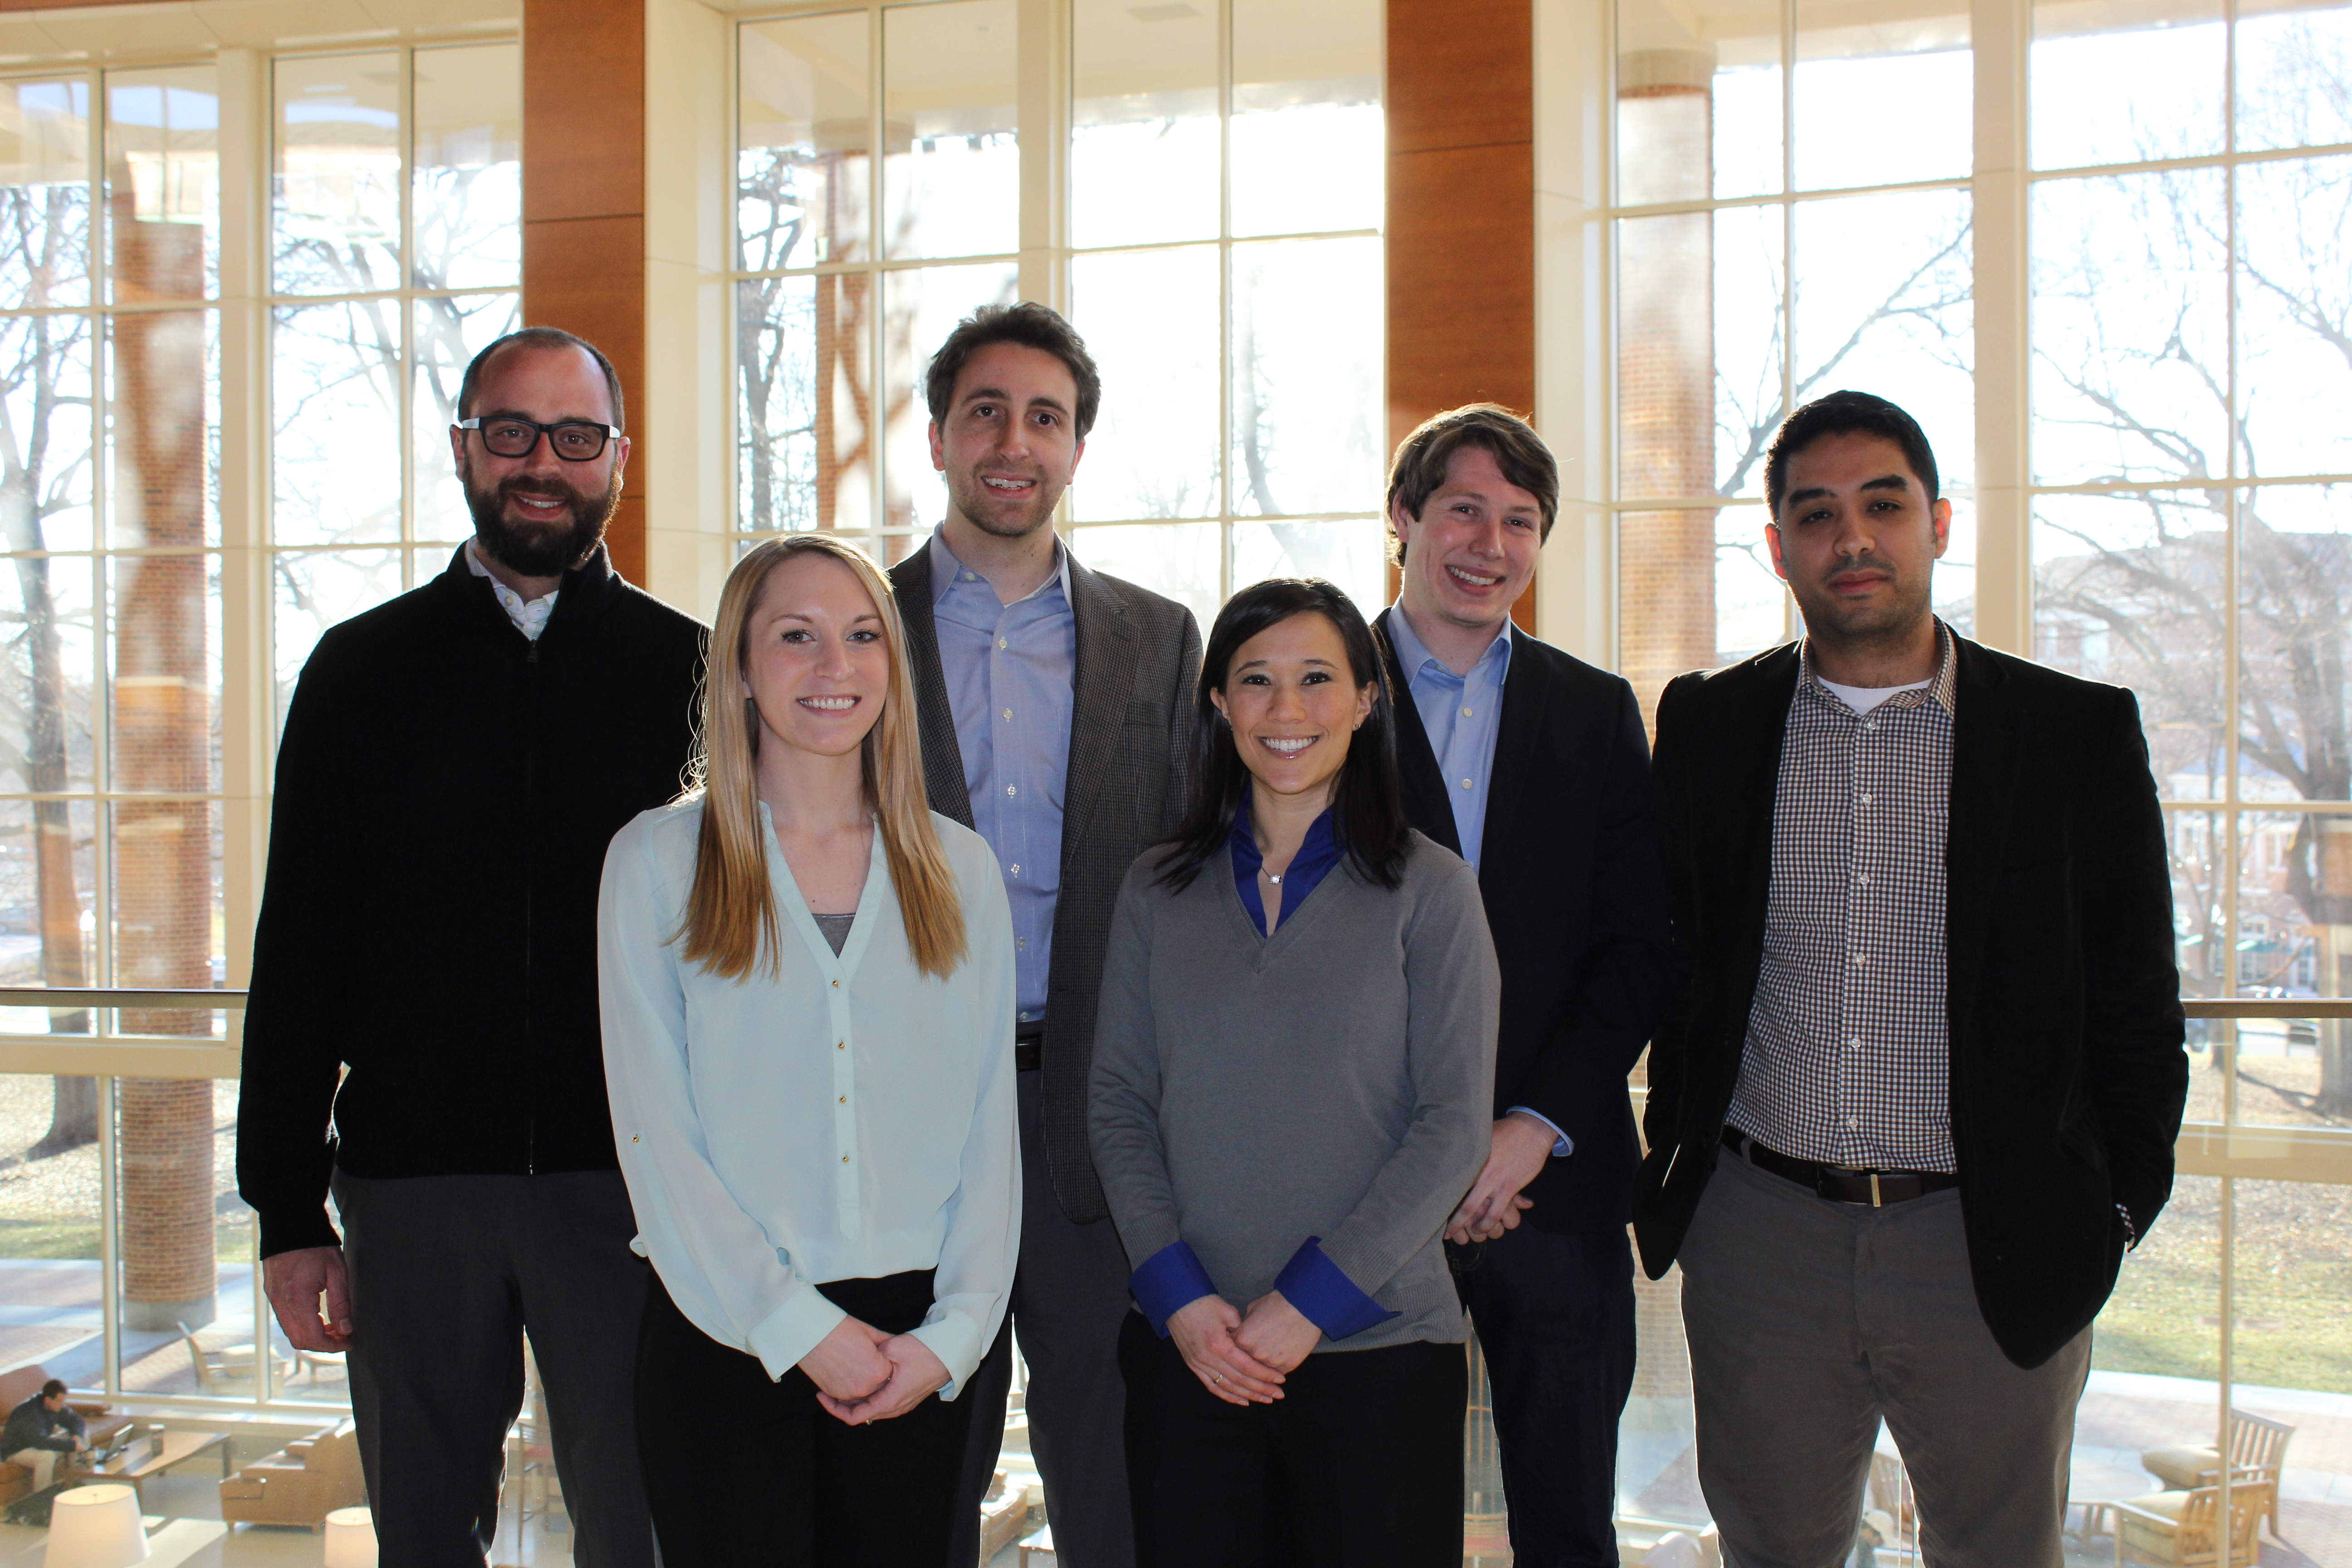 Wake Forest University students, left to right, Andy Bowline (MBA), Alison Arter (Ph.D), Kyle Murrah (Ph.D), Janel Suburu (Ph.D), John Hodnette (JD) and Gonzo Estupinan (MBA) advance as finalists in the first Breast Cancer Startup Challenge. (Photo: Business Wire)